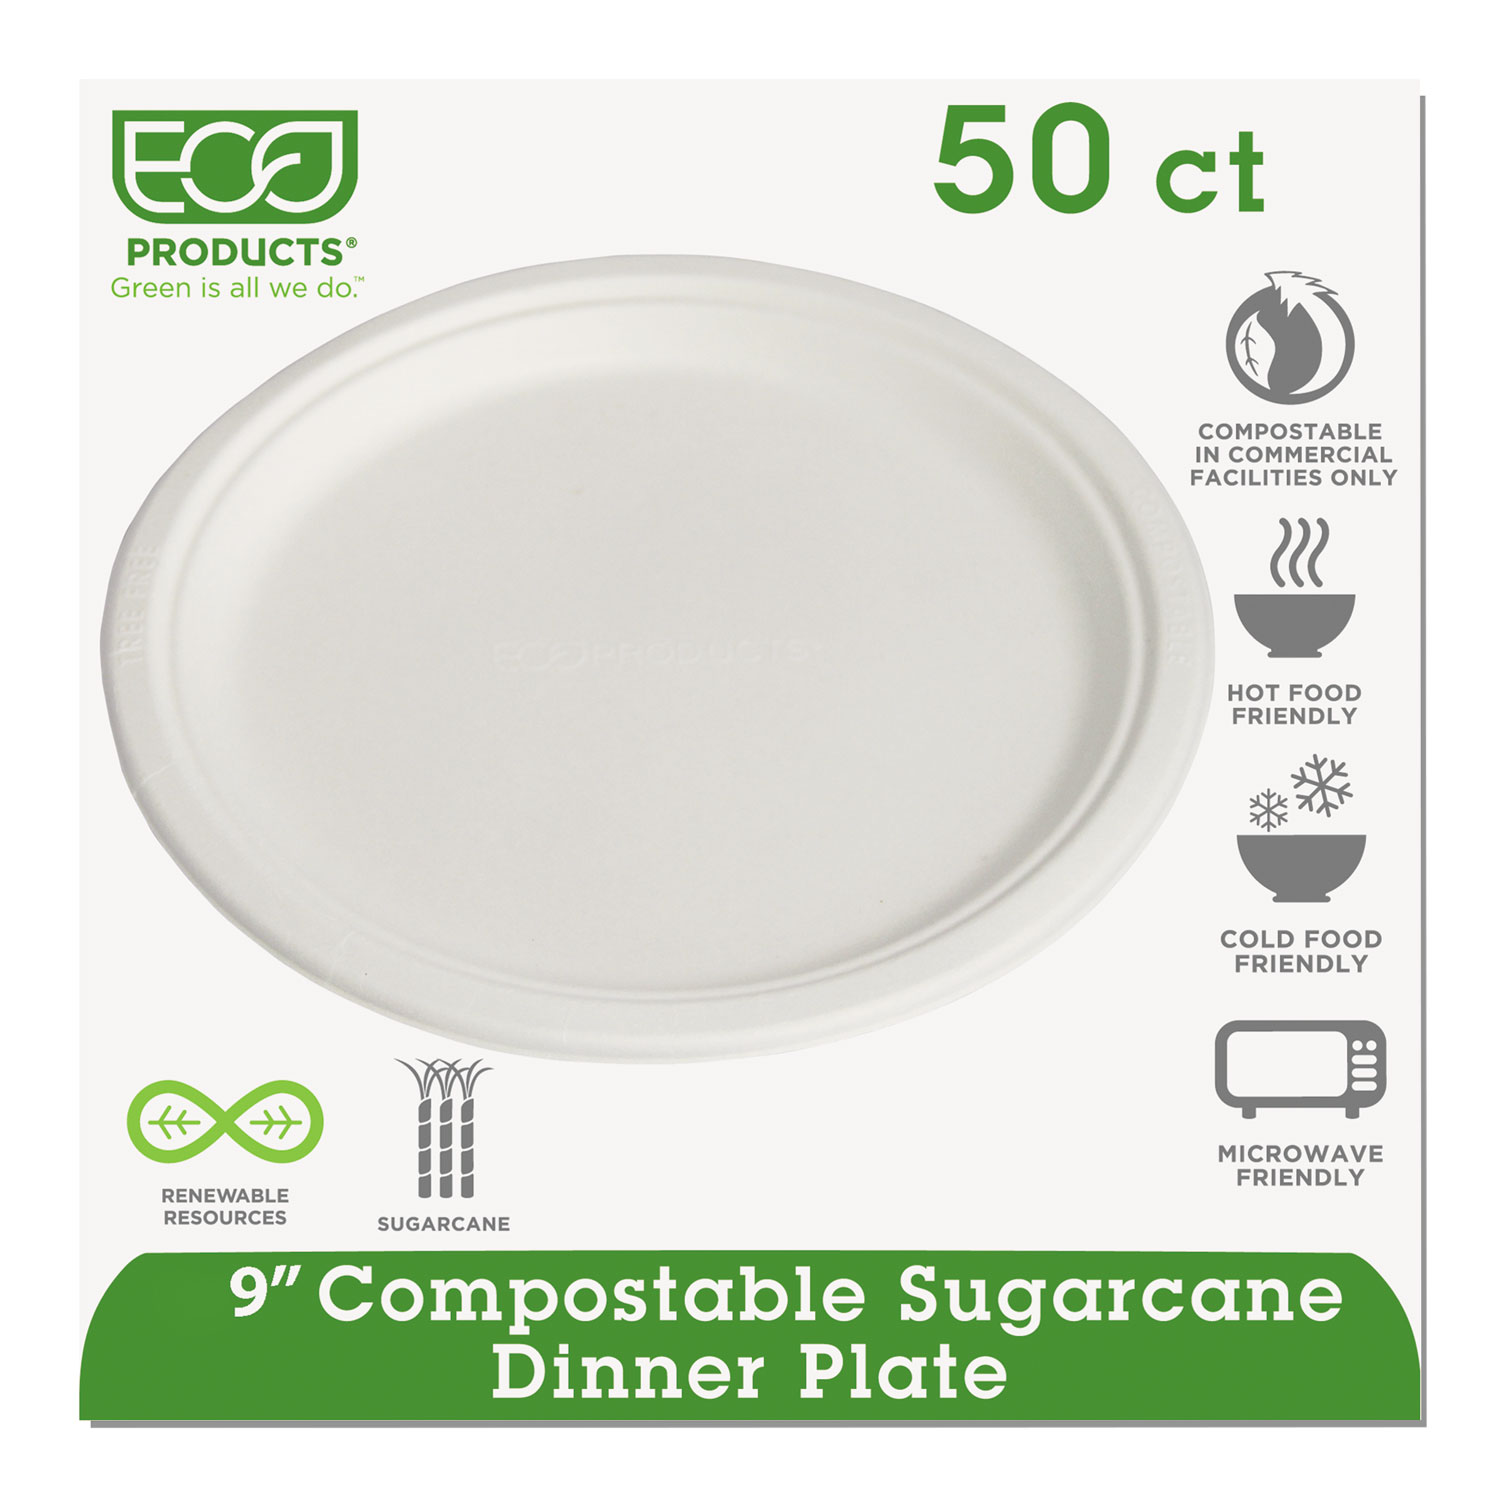 "Renewable/Compostable Sugarcane Plates Convenience Pack, 9"", 50/PK, 10 PK/CT ECOEPP013PKCT"